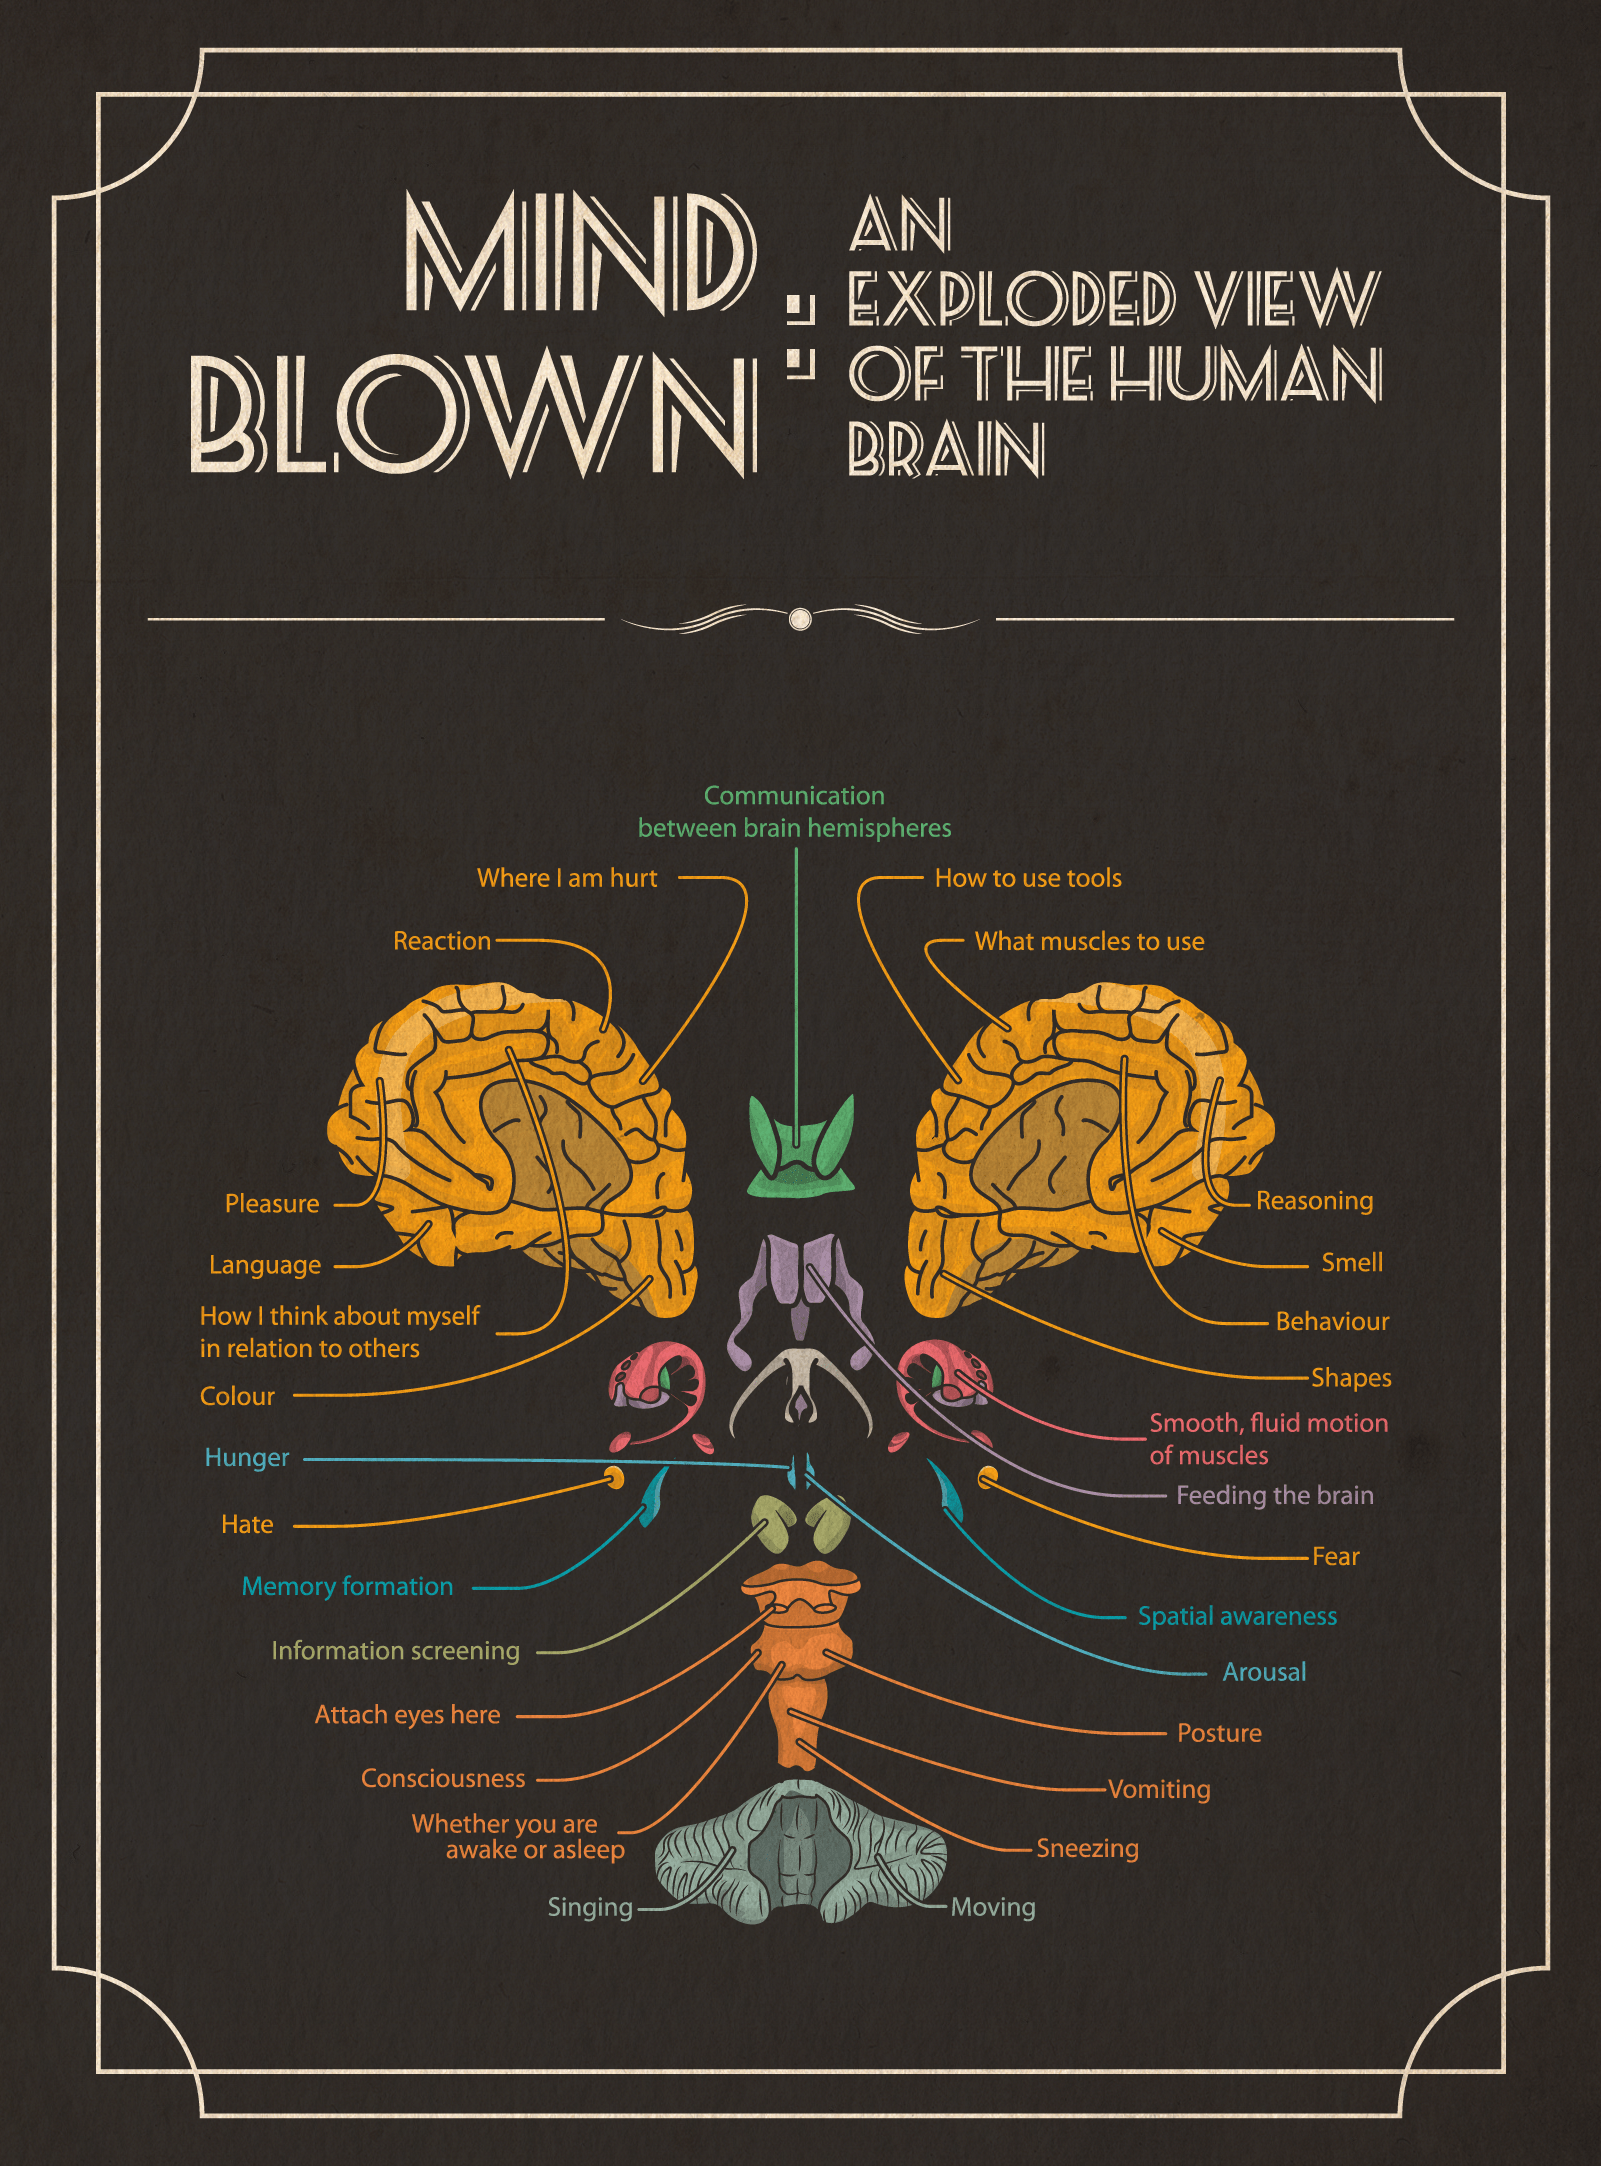 mind blown an exploded view of the human brain